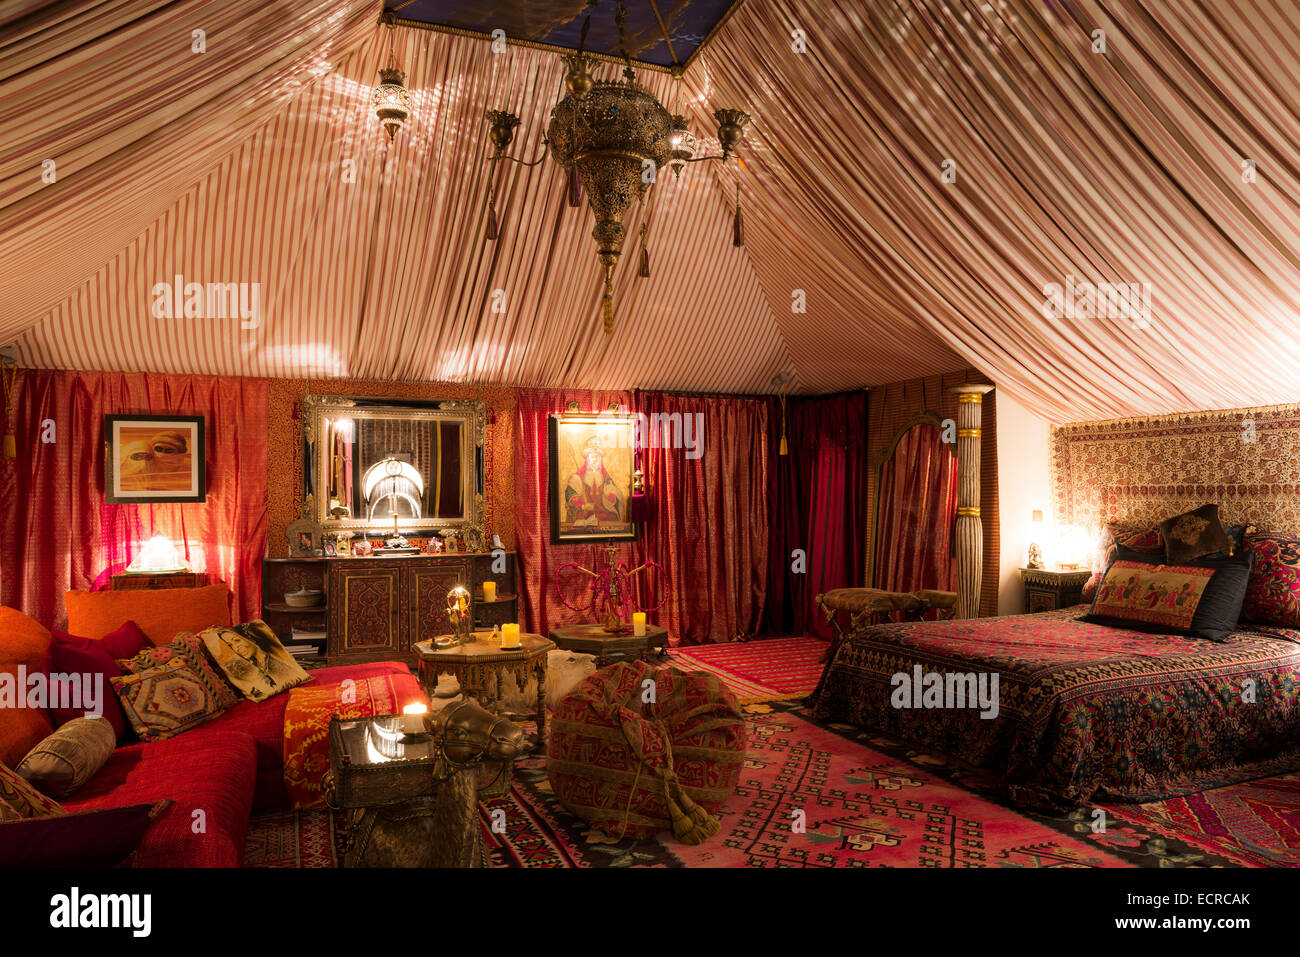 moroccan tent photos moroccan tent images alamy. Black Bedroom Furniture Sets. Home Design Ideas